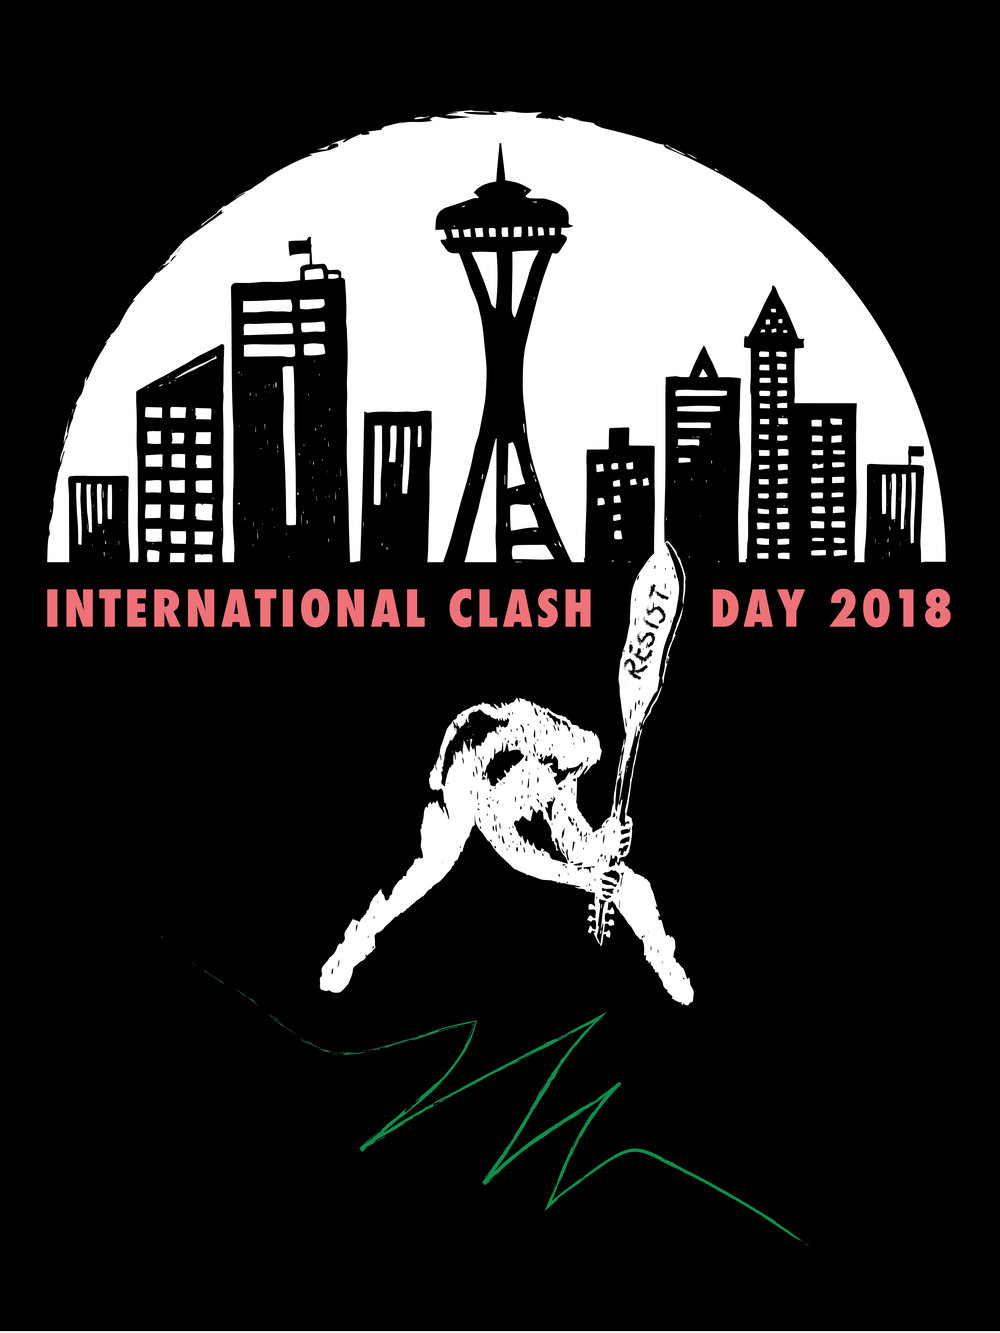 International Clash Day 2018 - I was one of 30 poster artists who participated in KEXP's International Clash Day 2018 on February 7th, 2018. These posters are currently on display in their gathering space through April 1st, 2018.Interested in purchasing this poster? Give me a shout in my